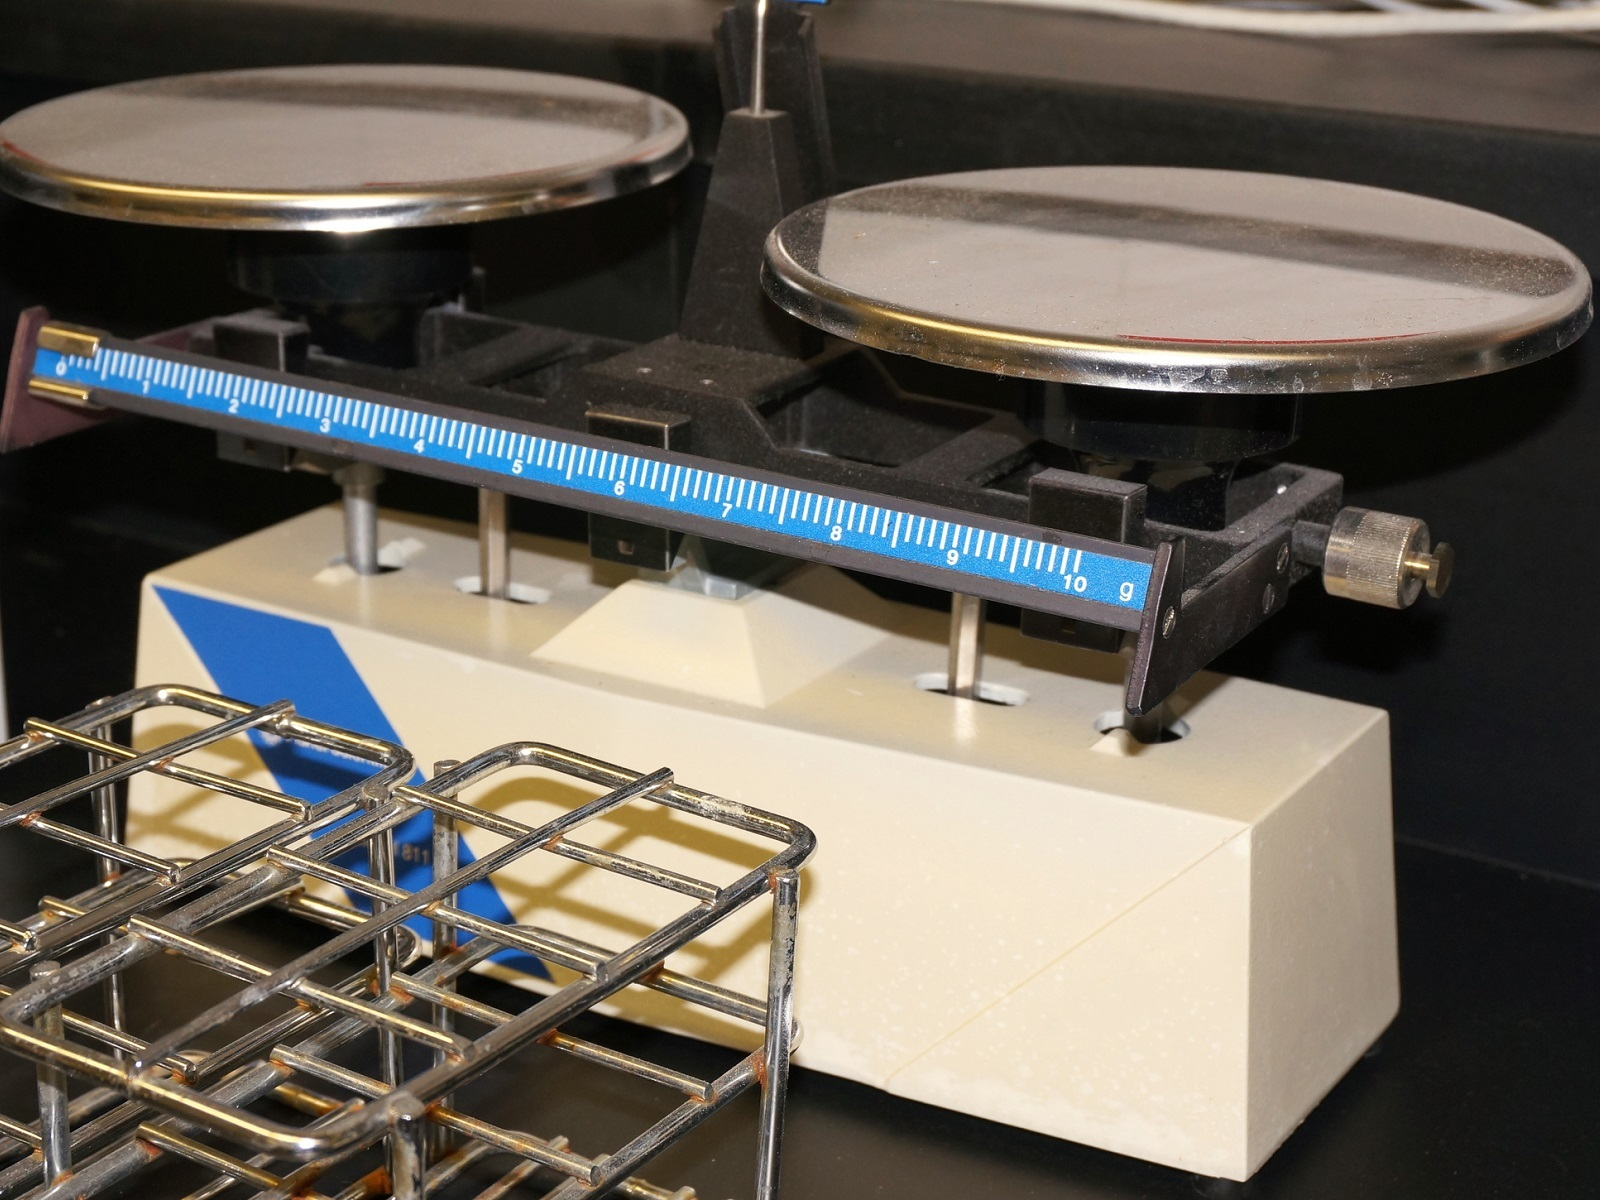 Eliminating Inaccuracy in Precision Weighing Caused by